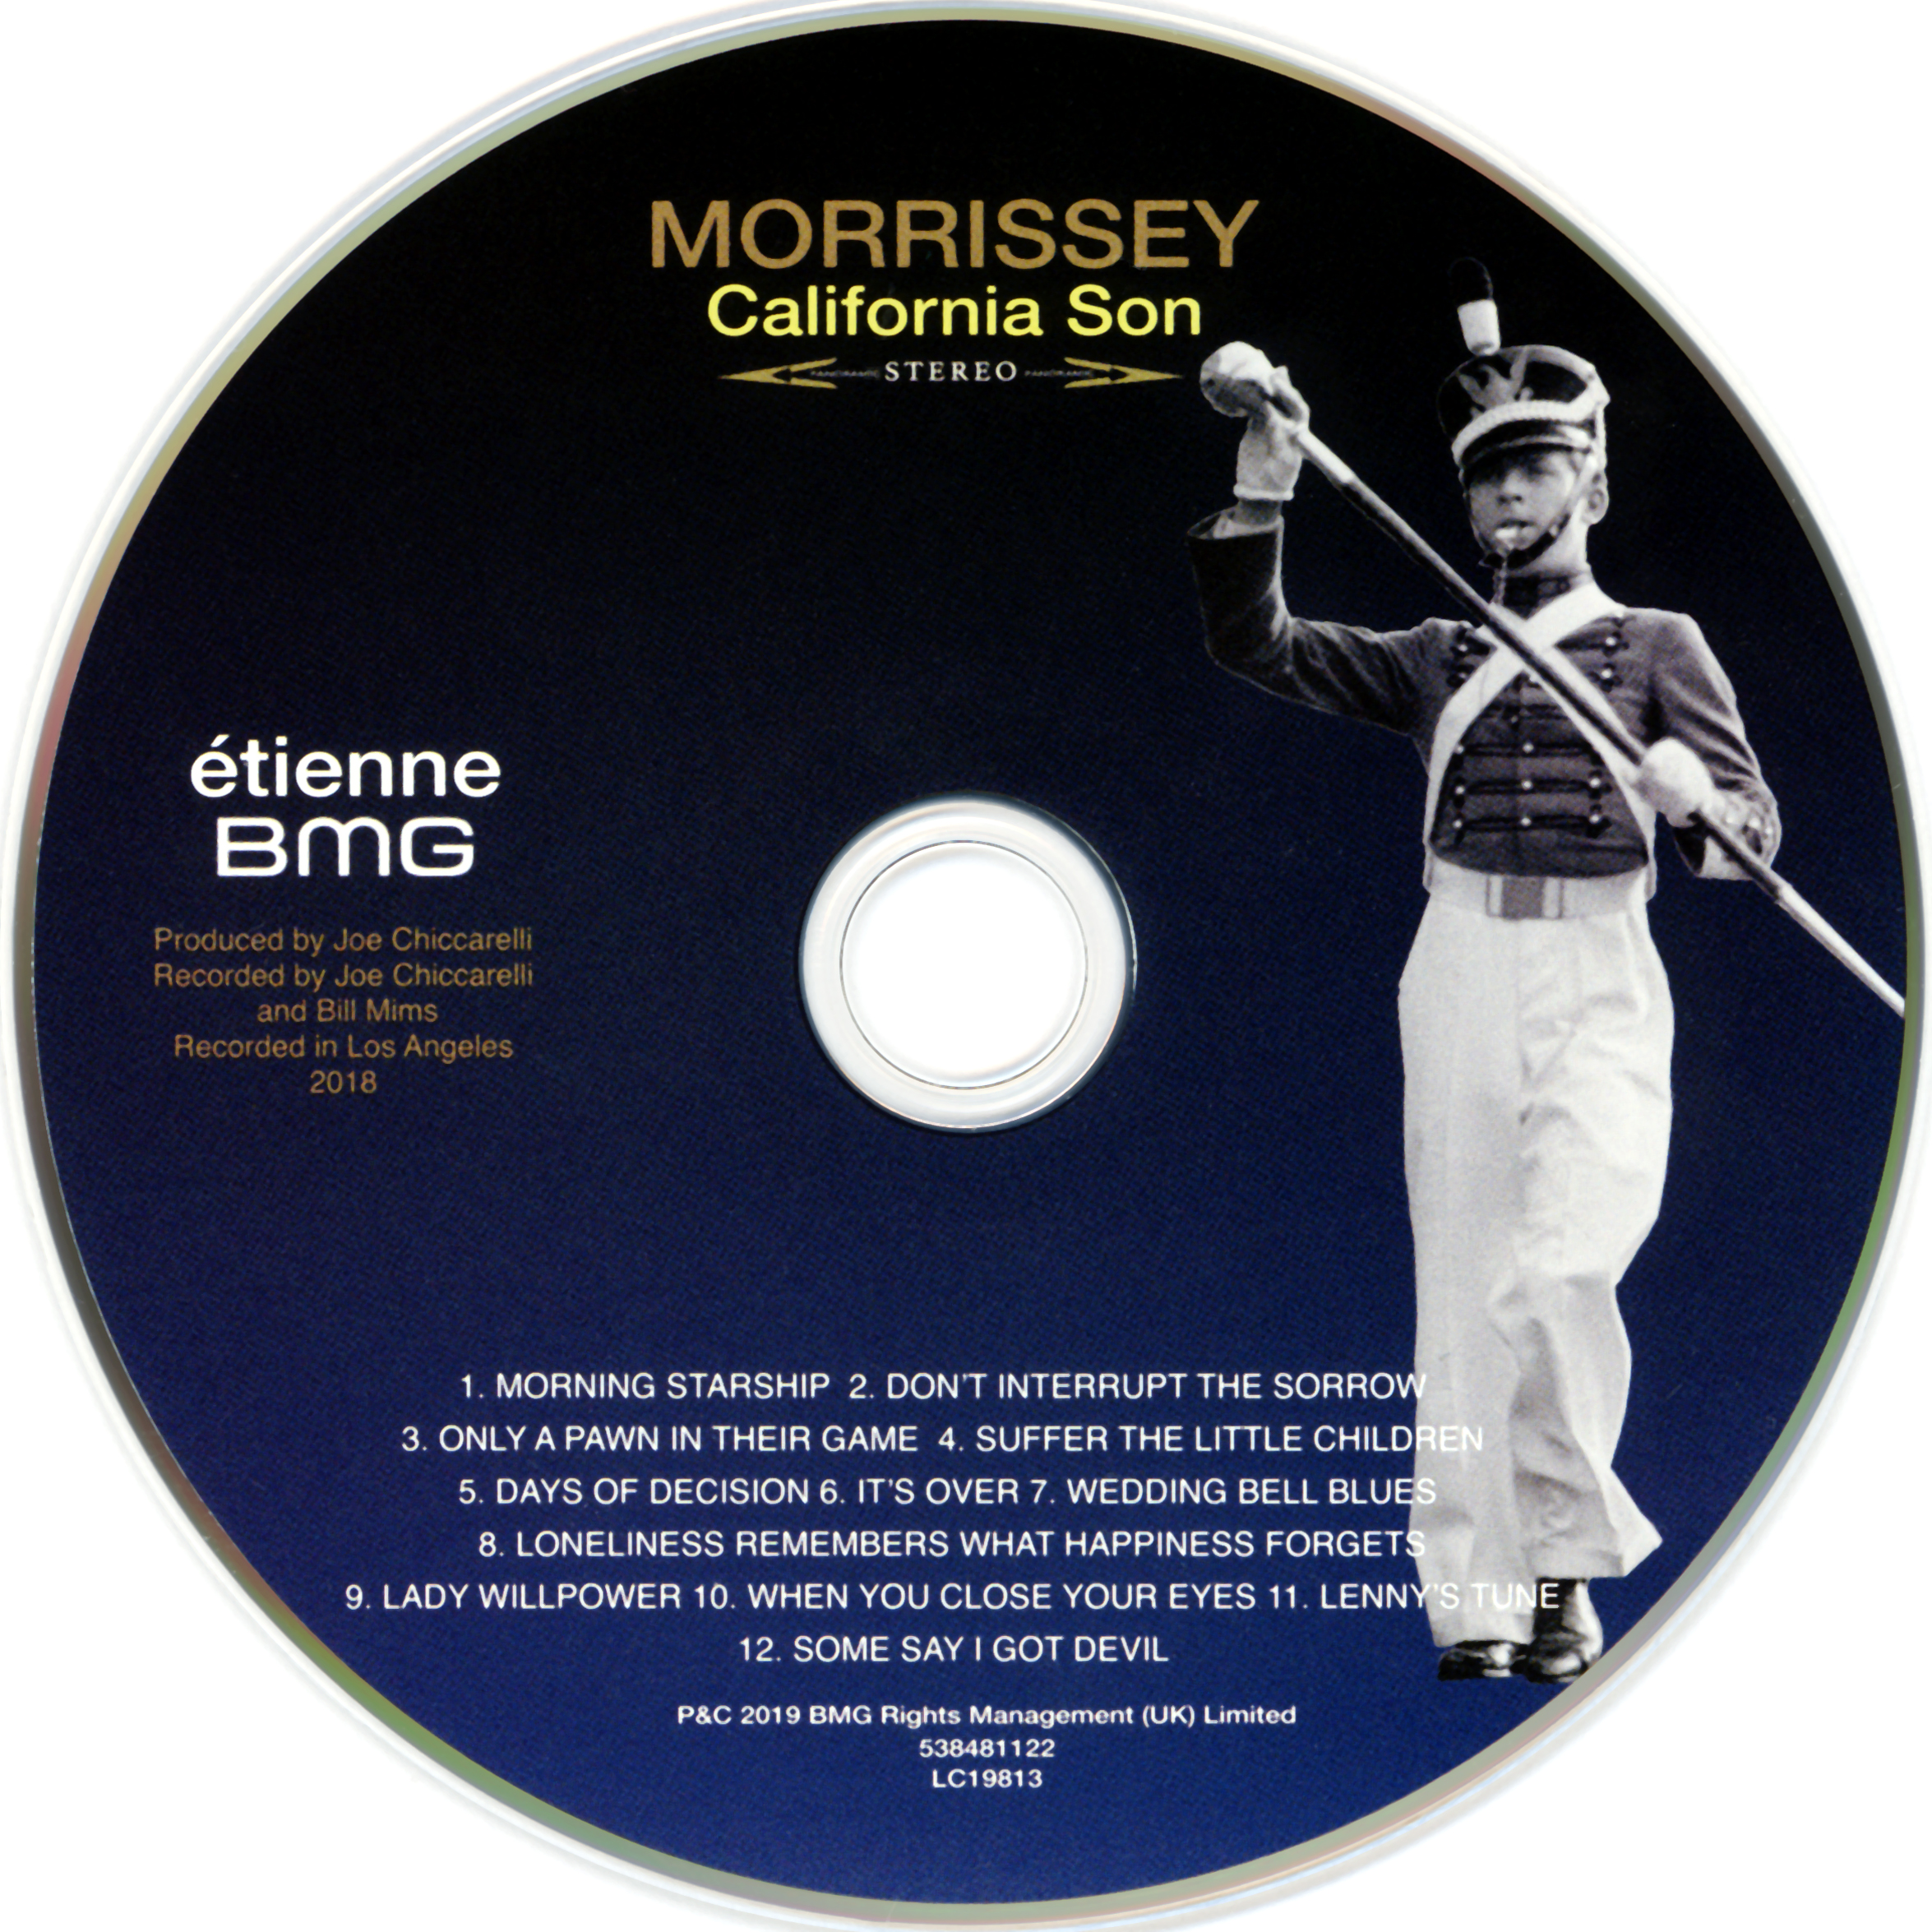 2019-05-24 'California Son' By Morrissey [U.S. Étienne Records Pressing] [CD Face]